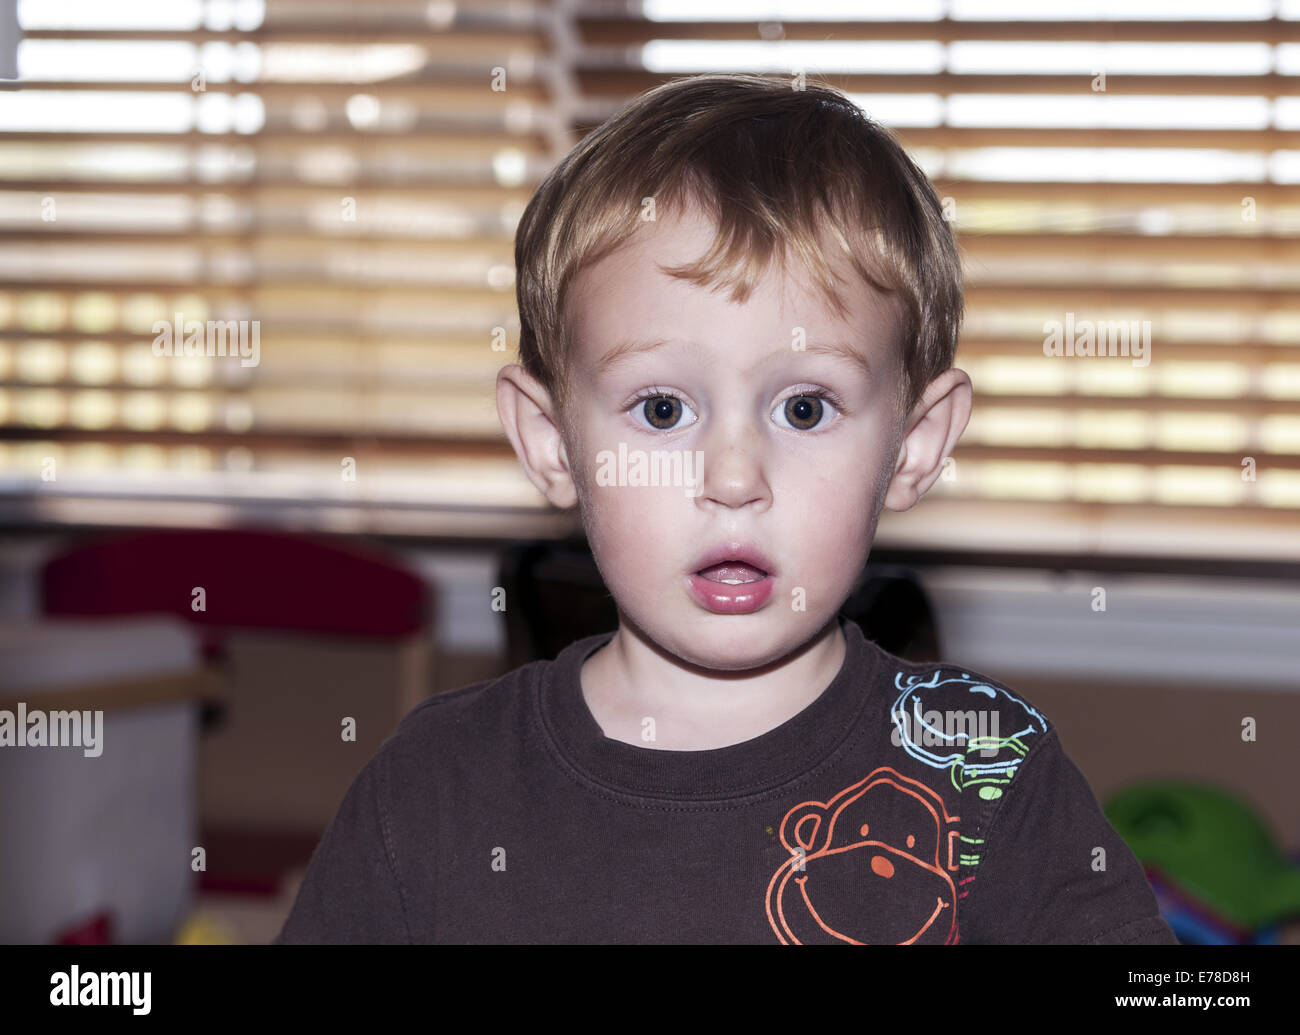 2 Year Old Young Boy With Surprised Look On His Face